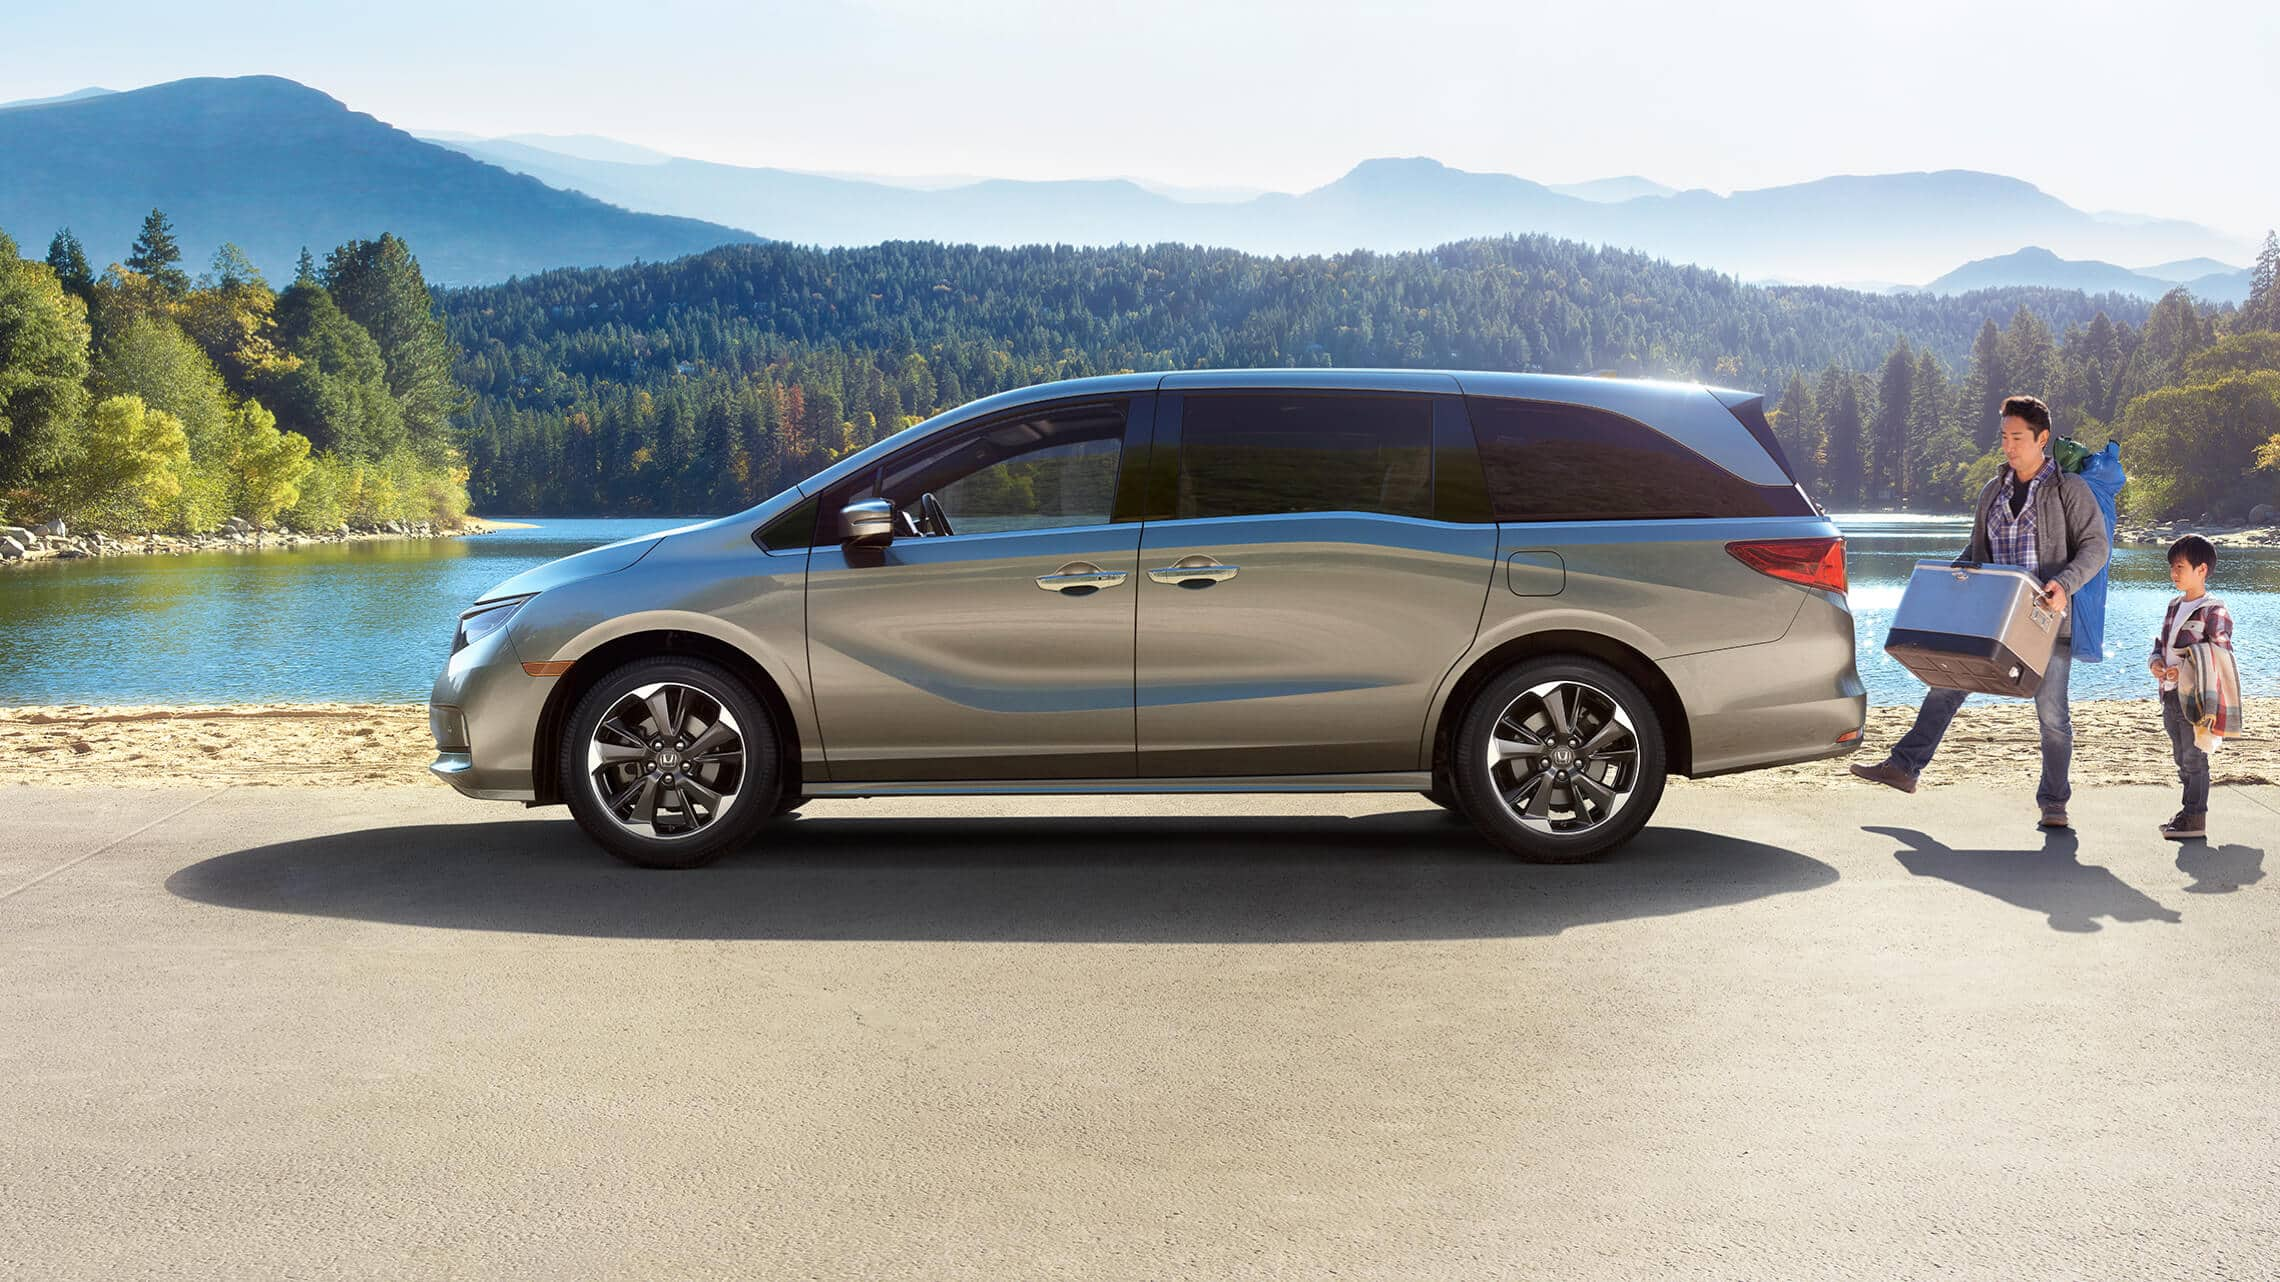 Driver-side profile view of the 2021 Honda Odyssey Touring in Lunar Silver Metallic parked in forest environment.